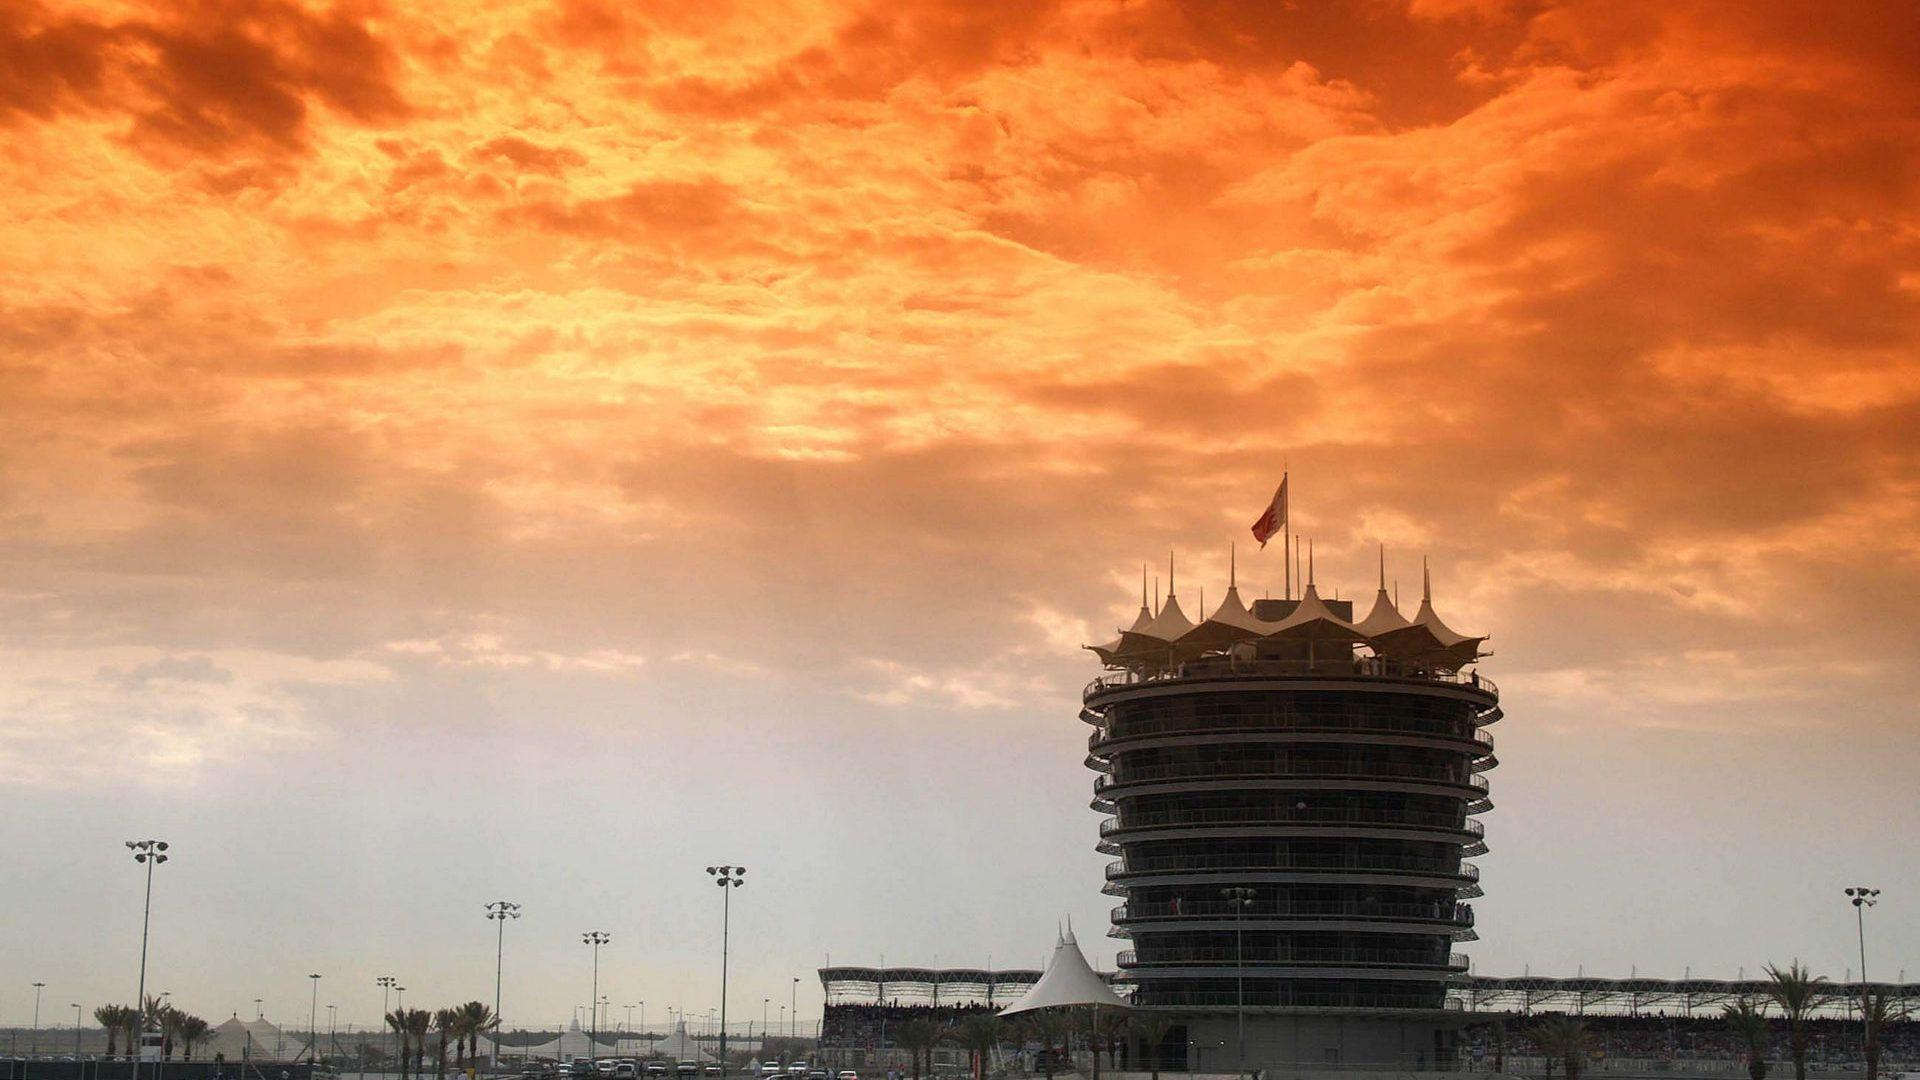 HD Wallpapers 2004 Formula 1 Grand Prix of Bahrain | F1-Fansite.com